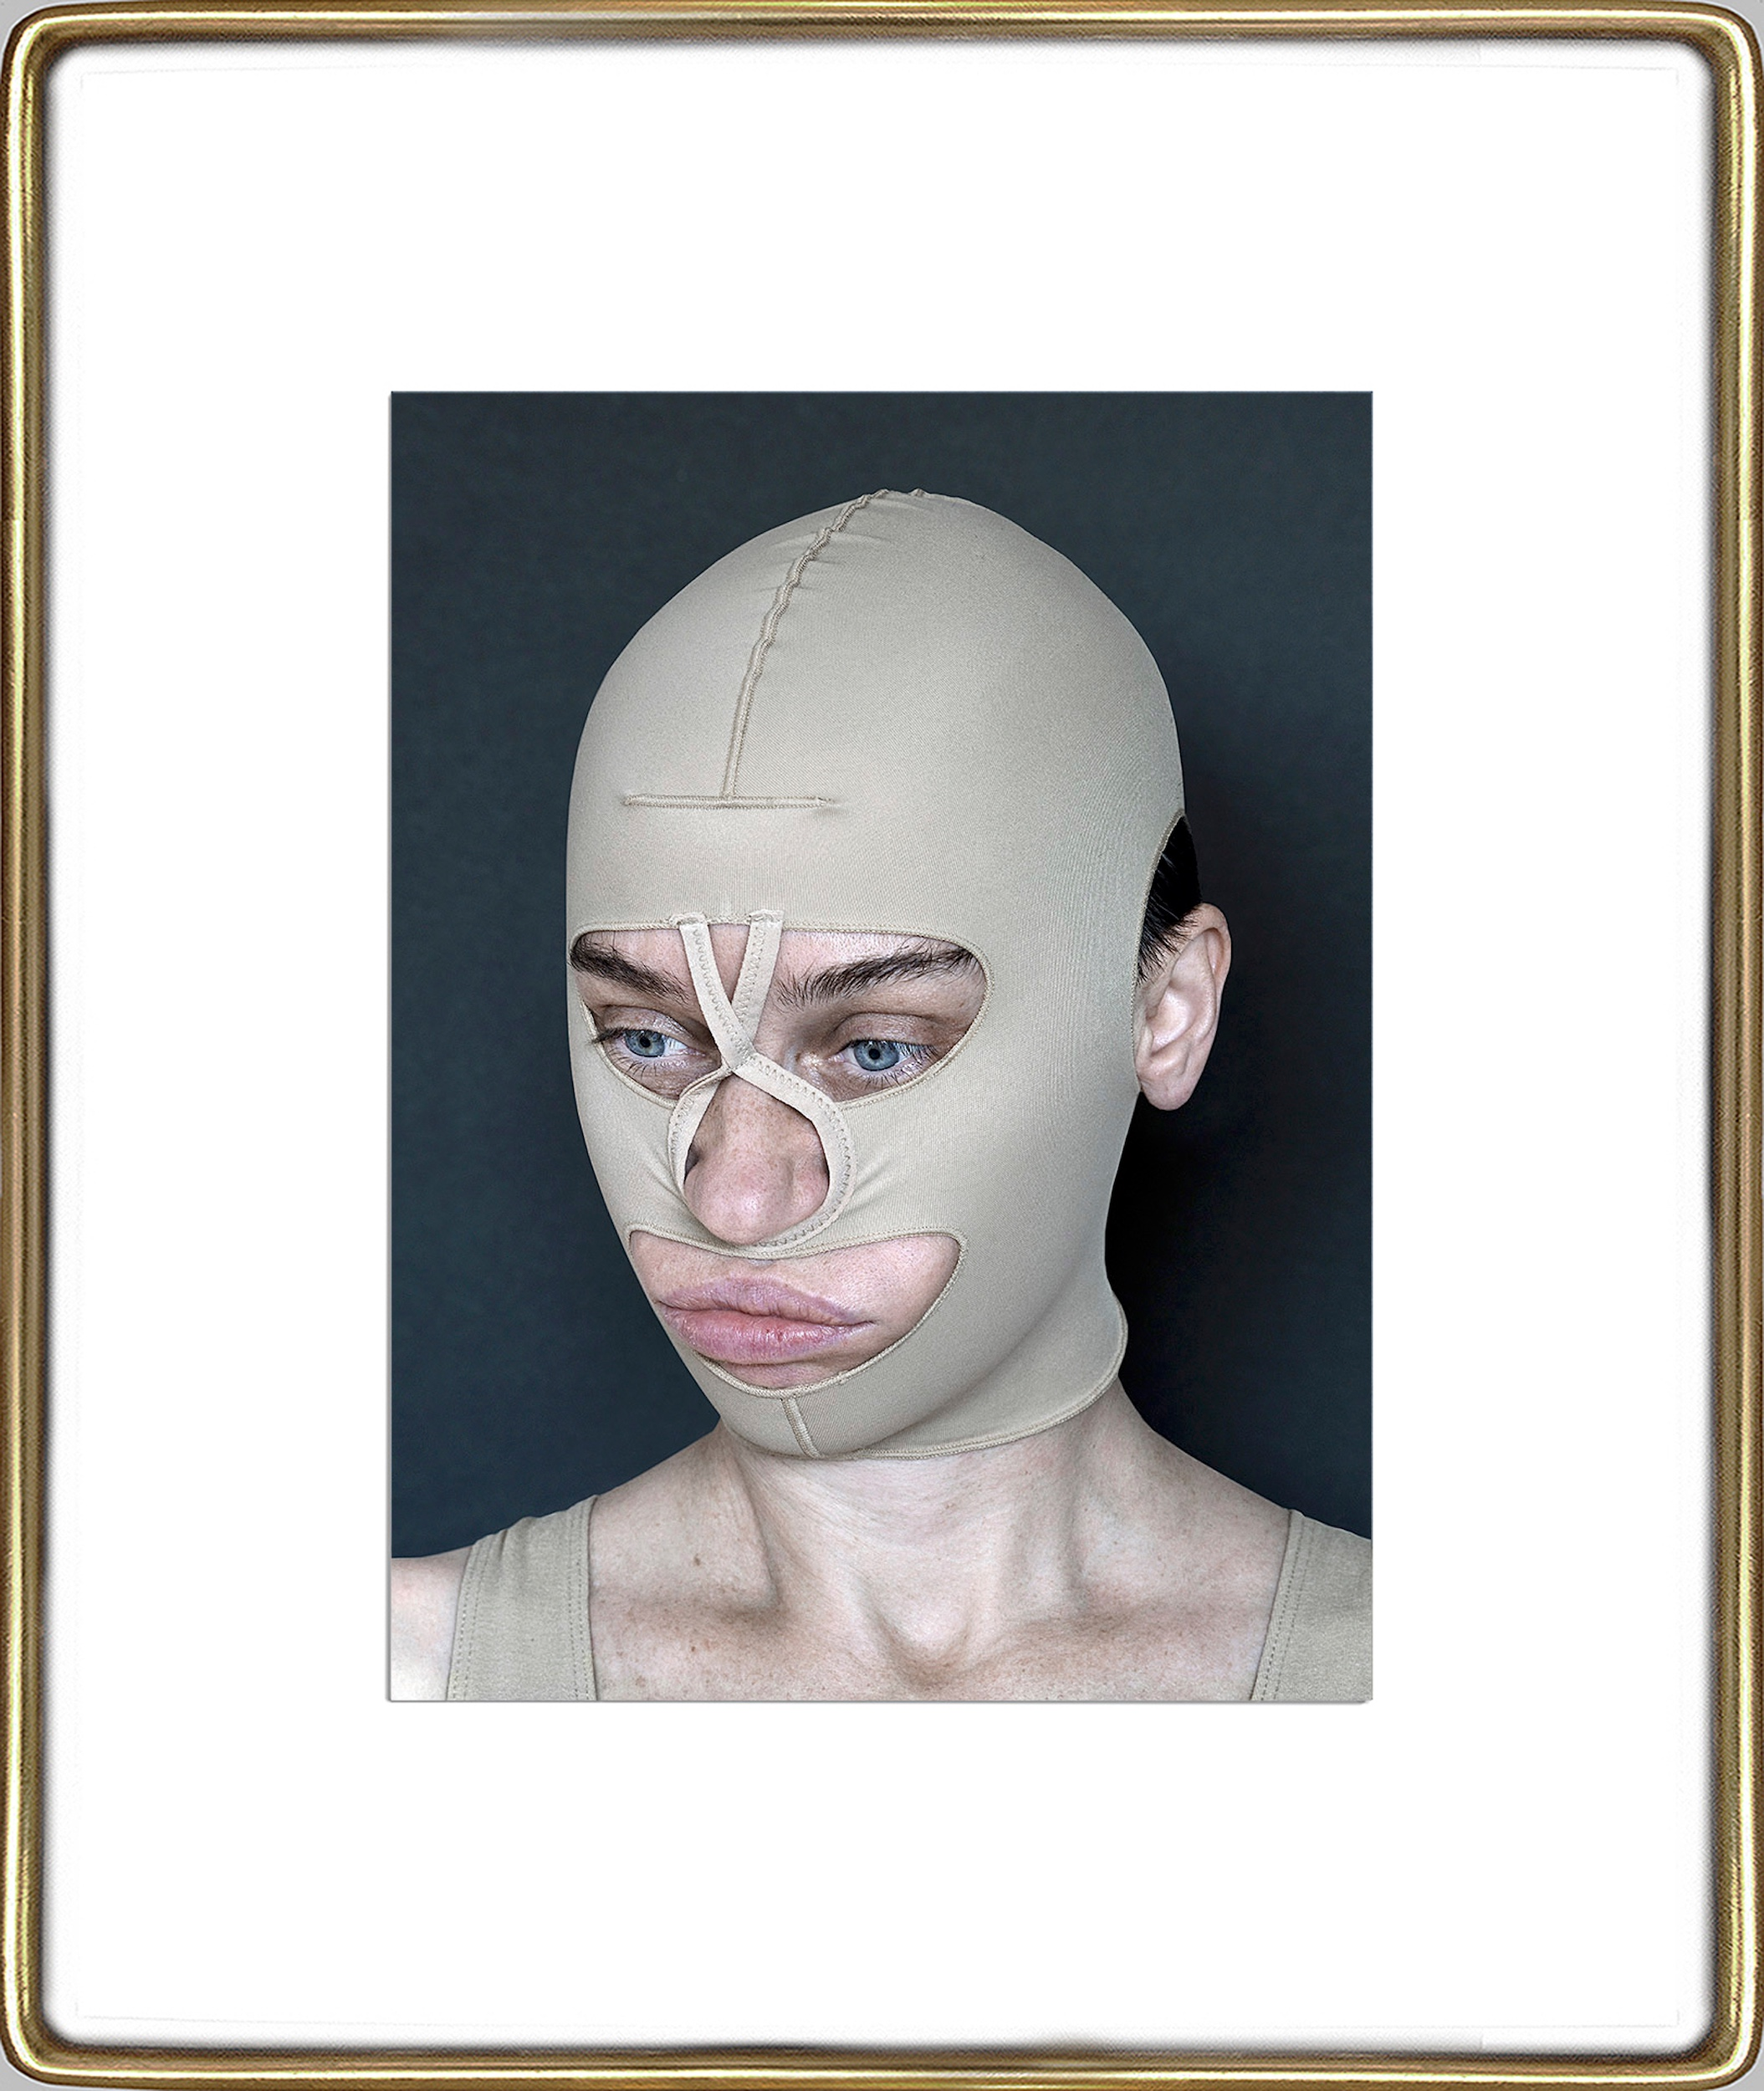 Aneta Grzeszykowska   Beauty Mask #8 , 2017  Pigment ink on cotton paper  16.93 x 12.40 inches  23.82 x 19.23 inches (framed)  Edition of 3 + I A.P.